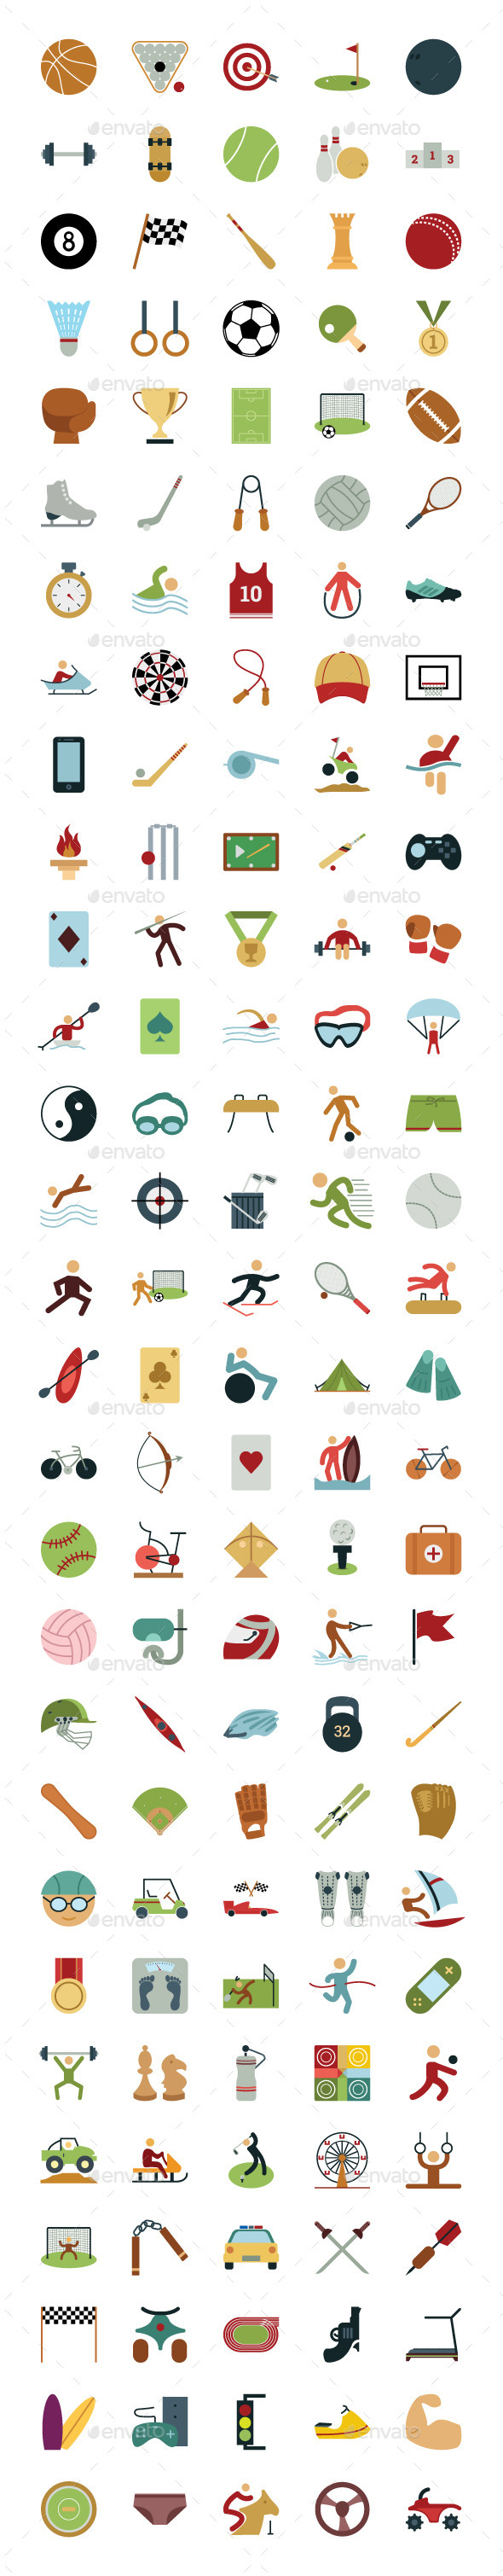 GraphicRiver 145 Sports and Games Vectors 10706602